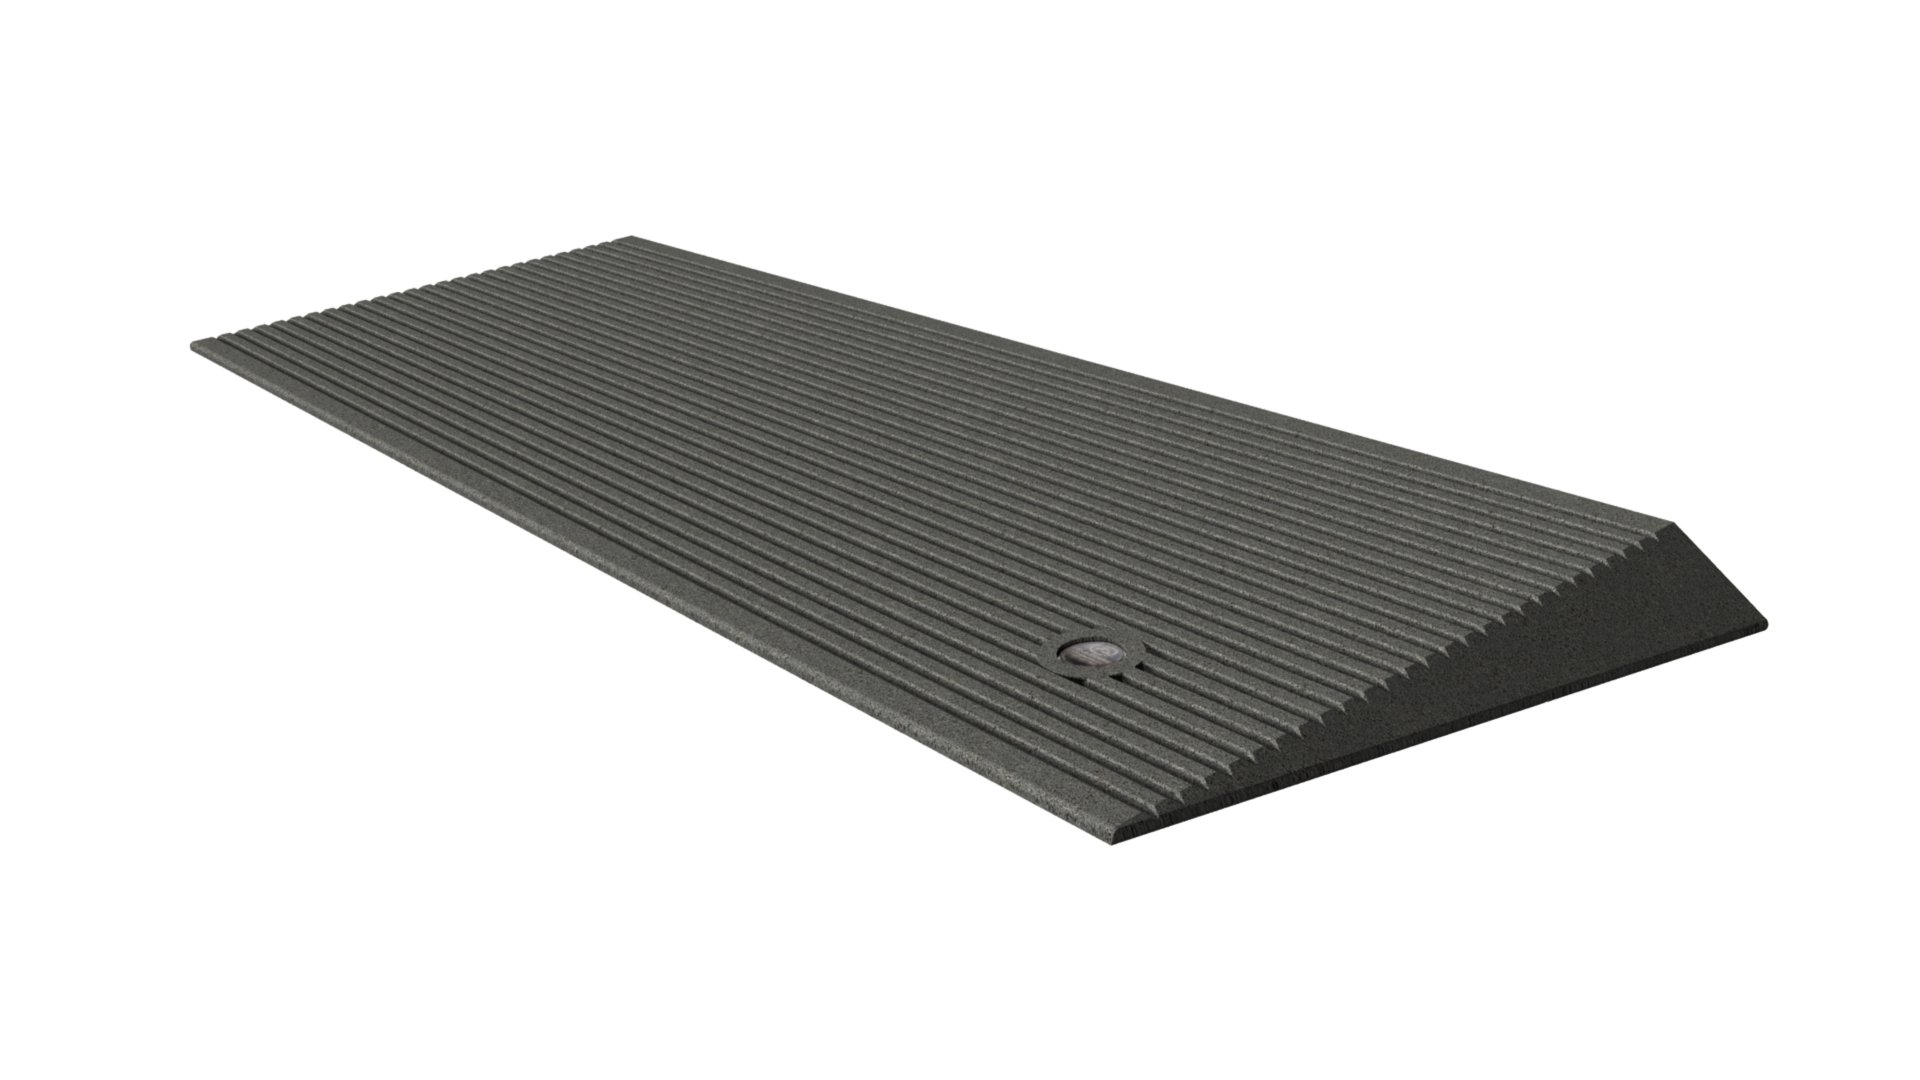 EZ-ACCESS Transitions Angled Entry Mat, Storm Grey, 15 Pound